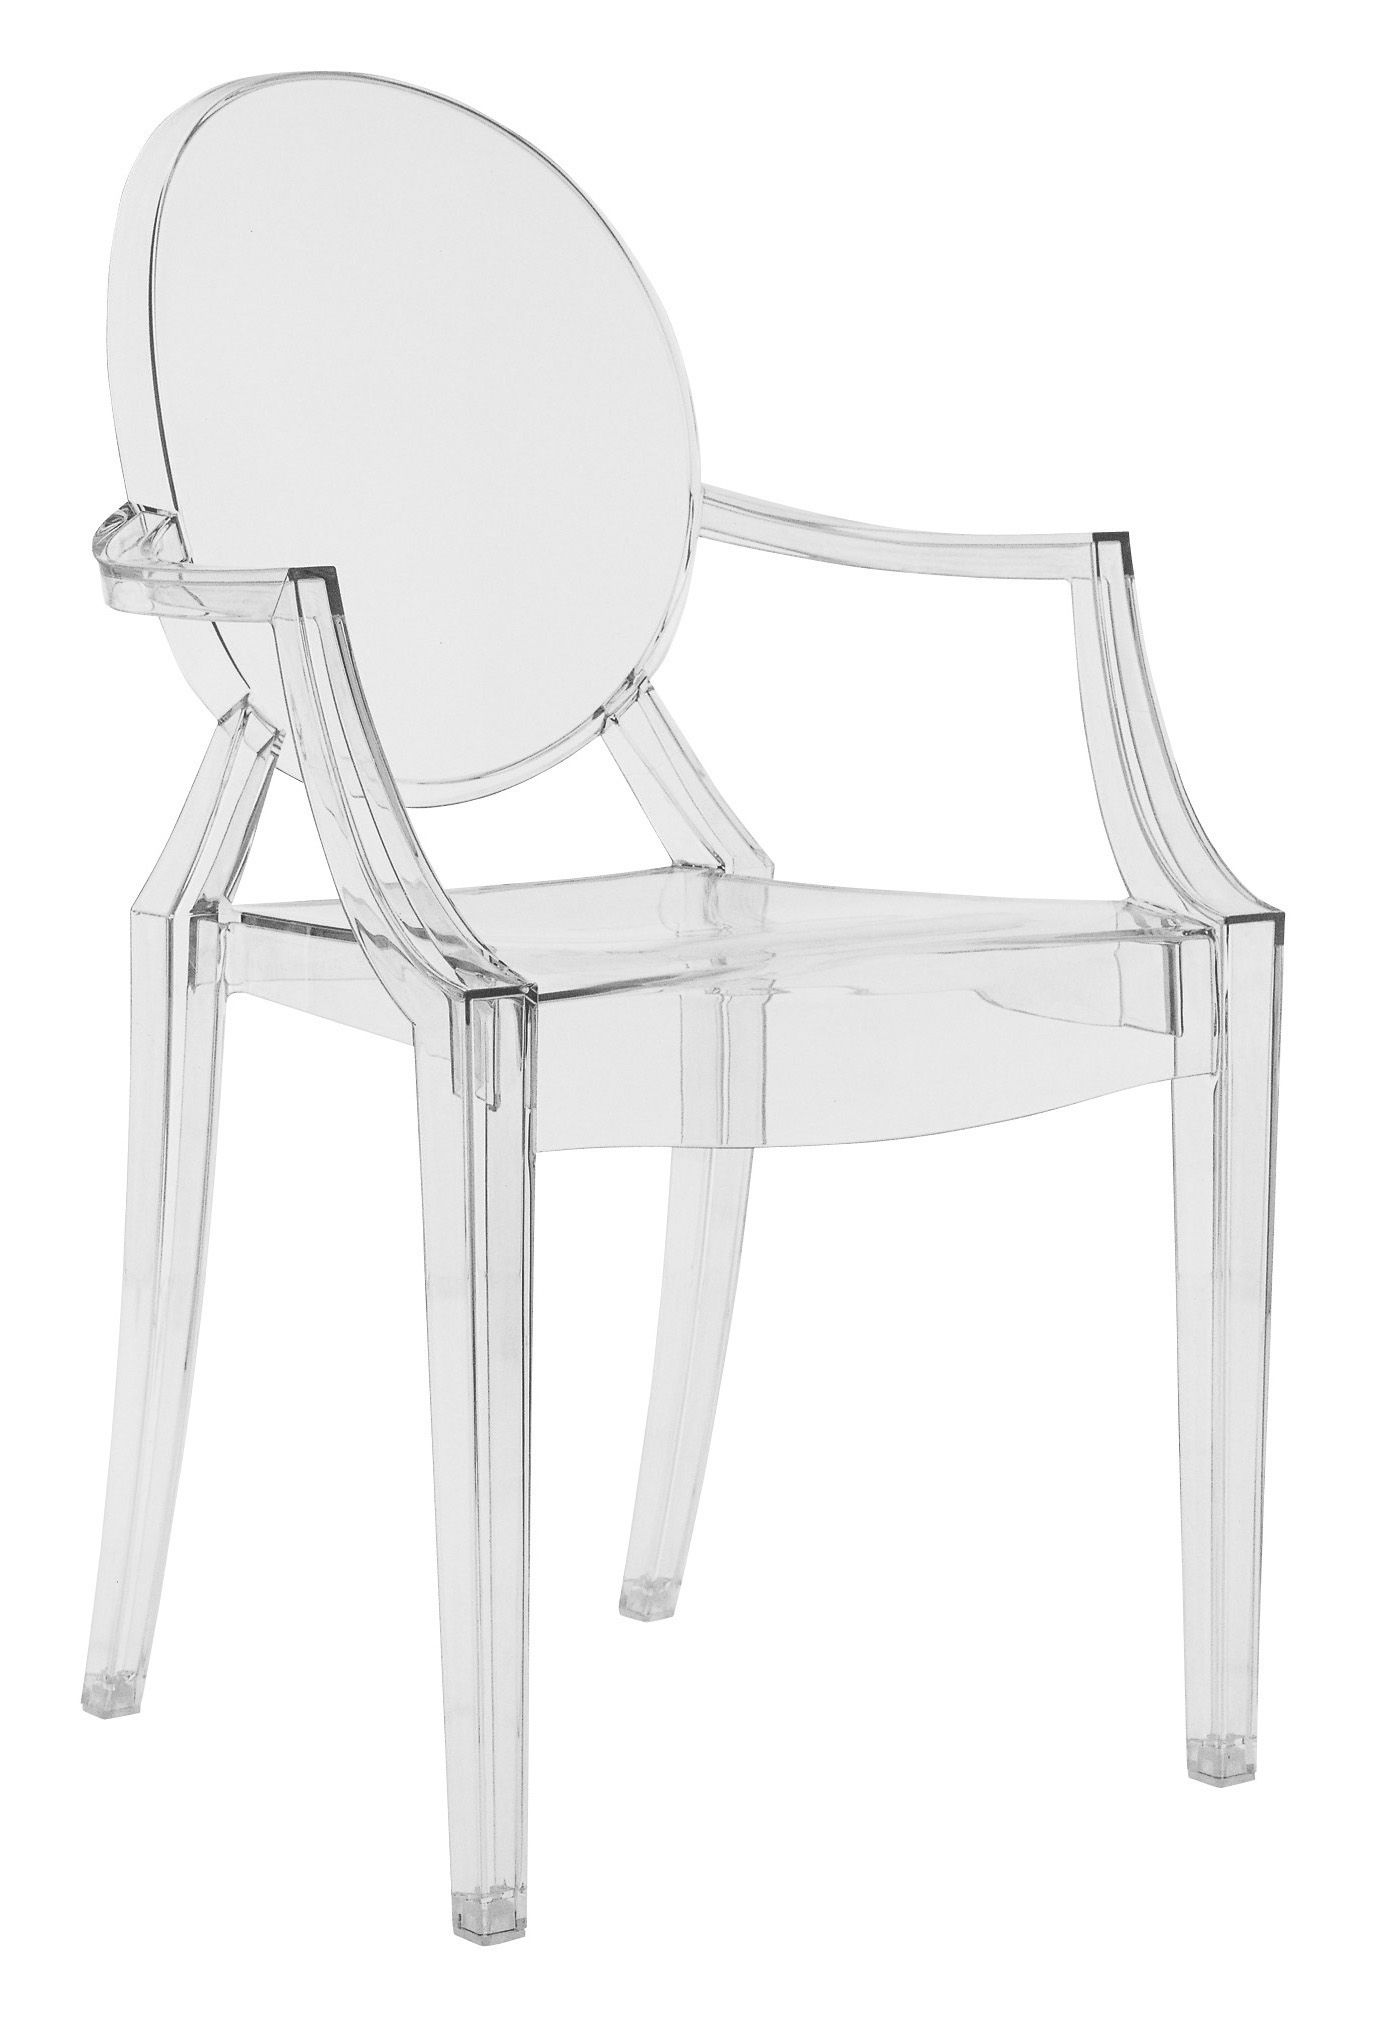 Mobilier Transparent Fauteuil Empilable Louis Ghost Transparent Polycarbonate Kartell